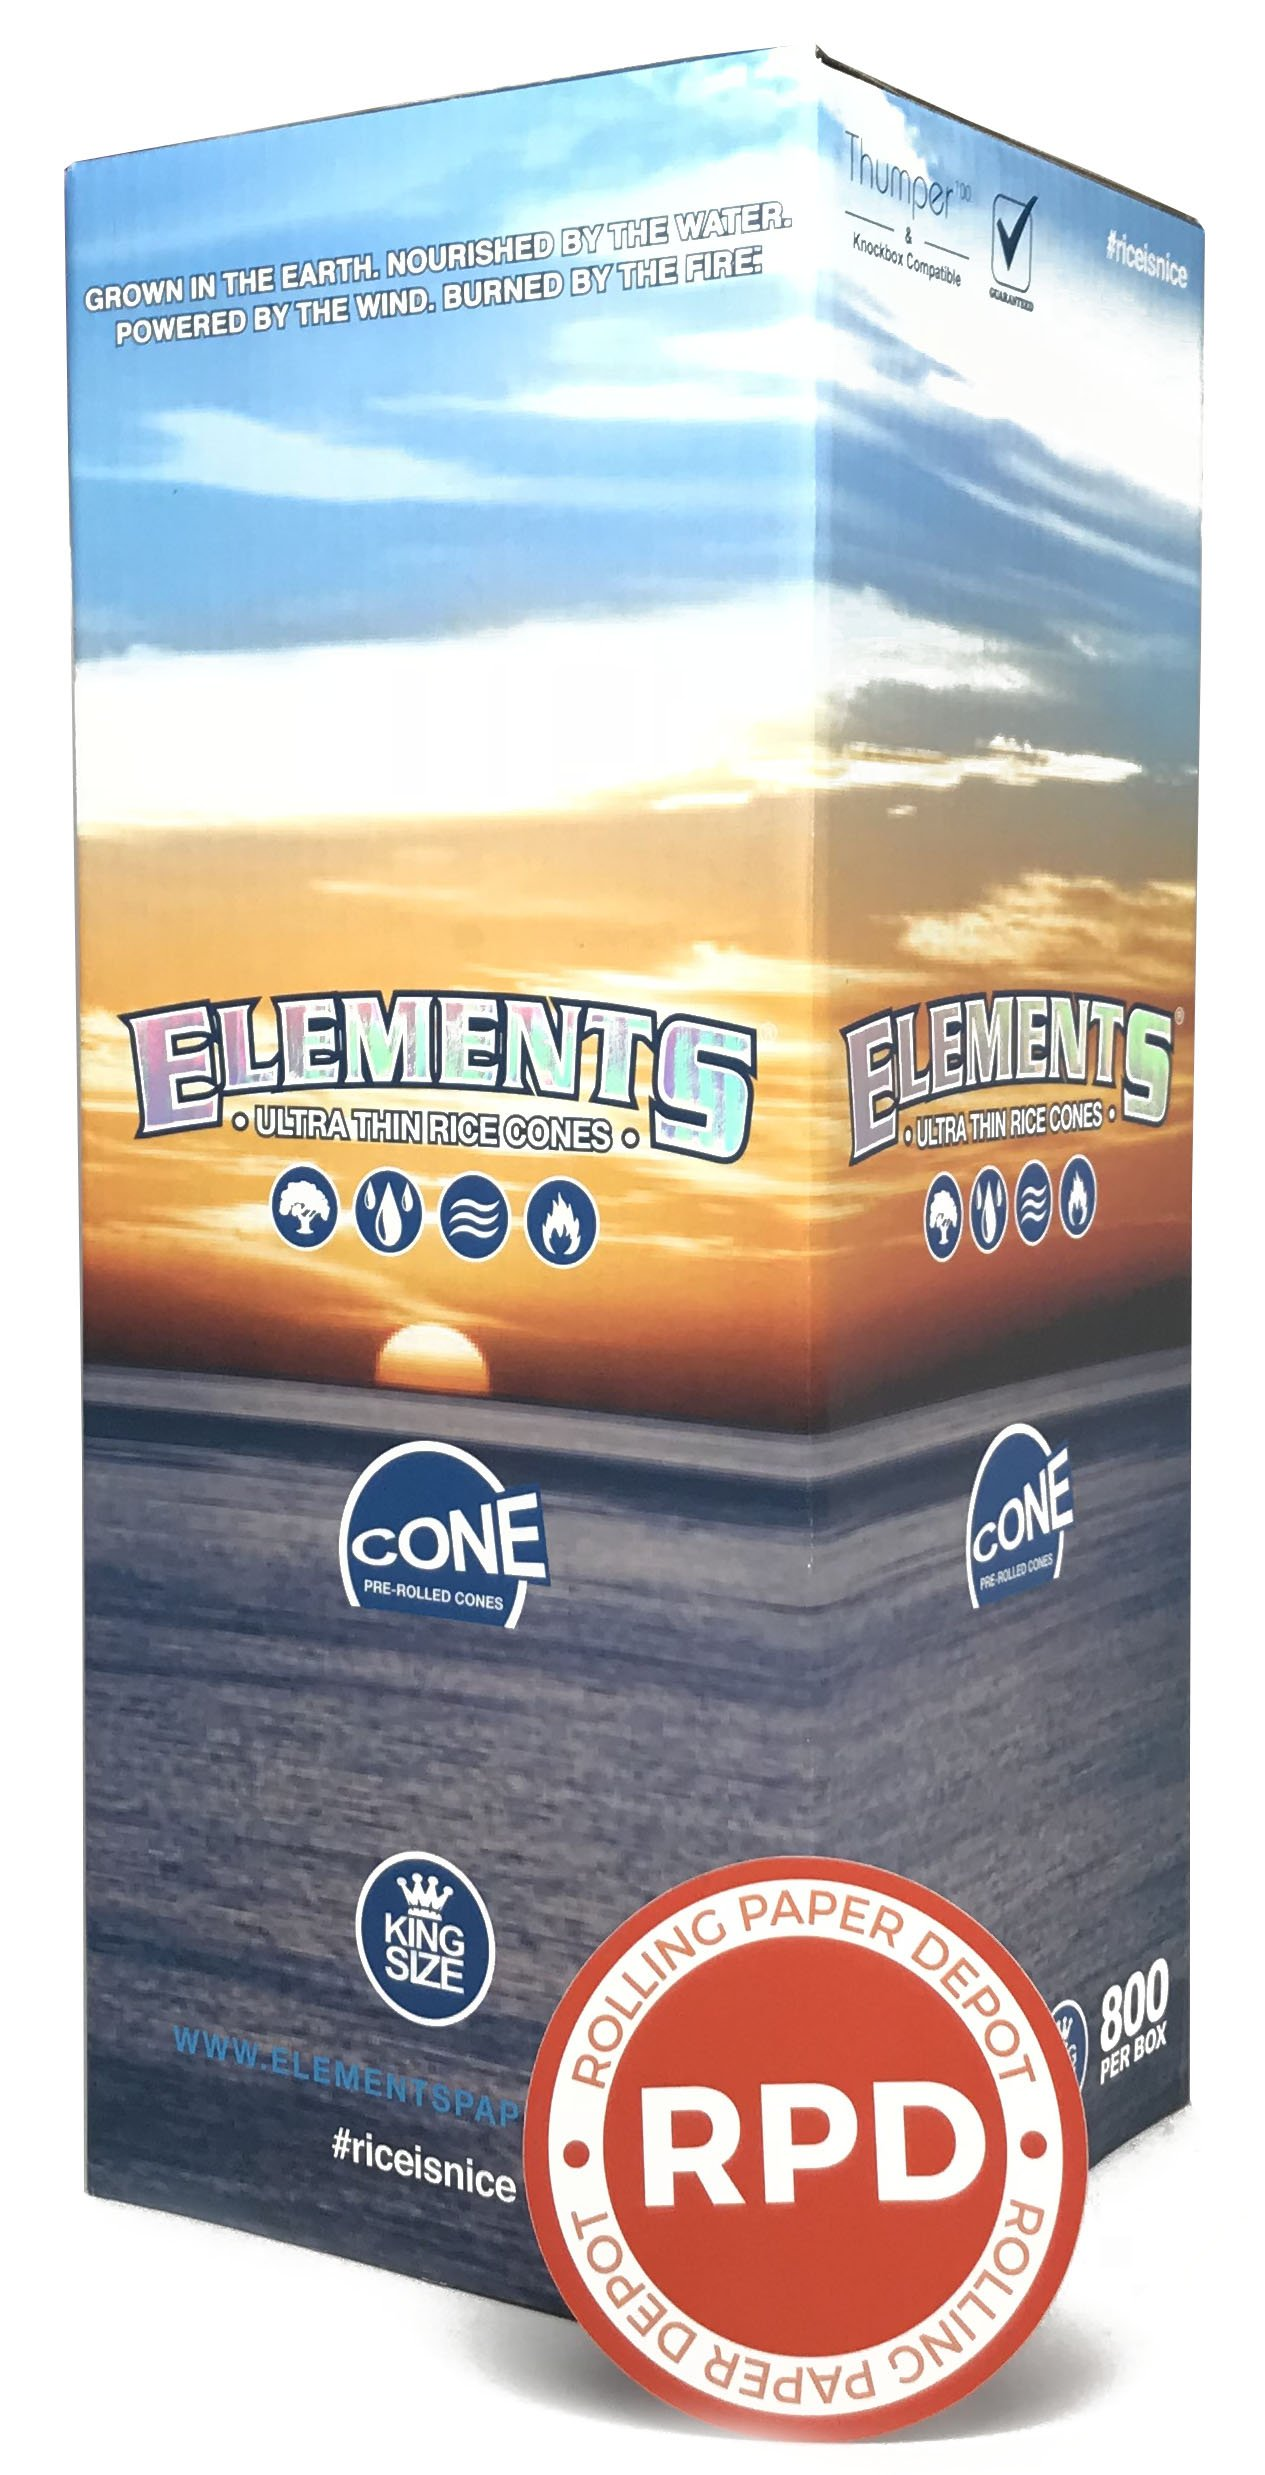 Elements Pre-Rolled Cone 800 Pack (King Size) with Rolling Paper Depot Sticker by Elements (Image #1)